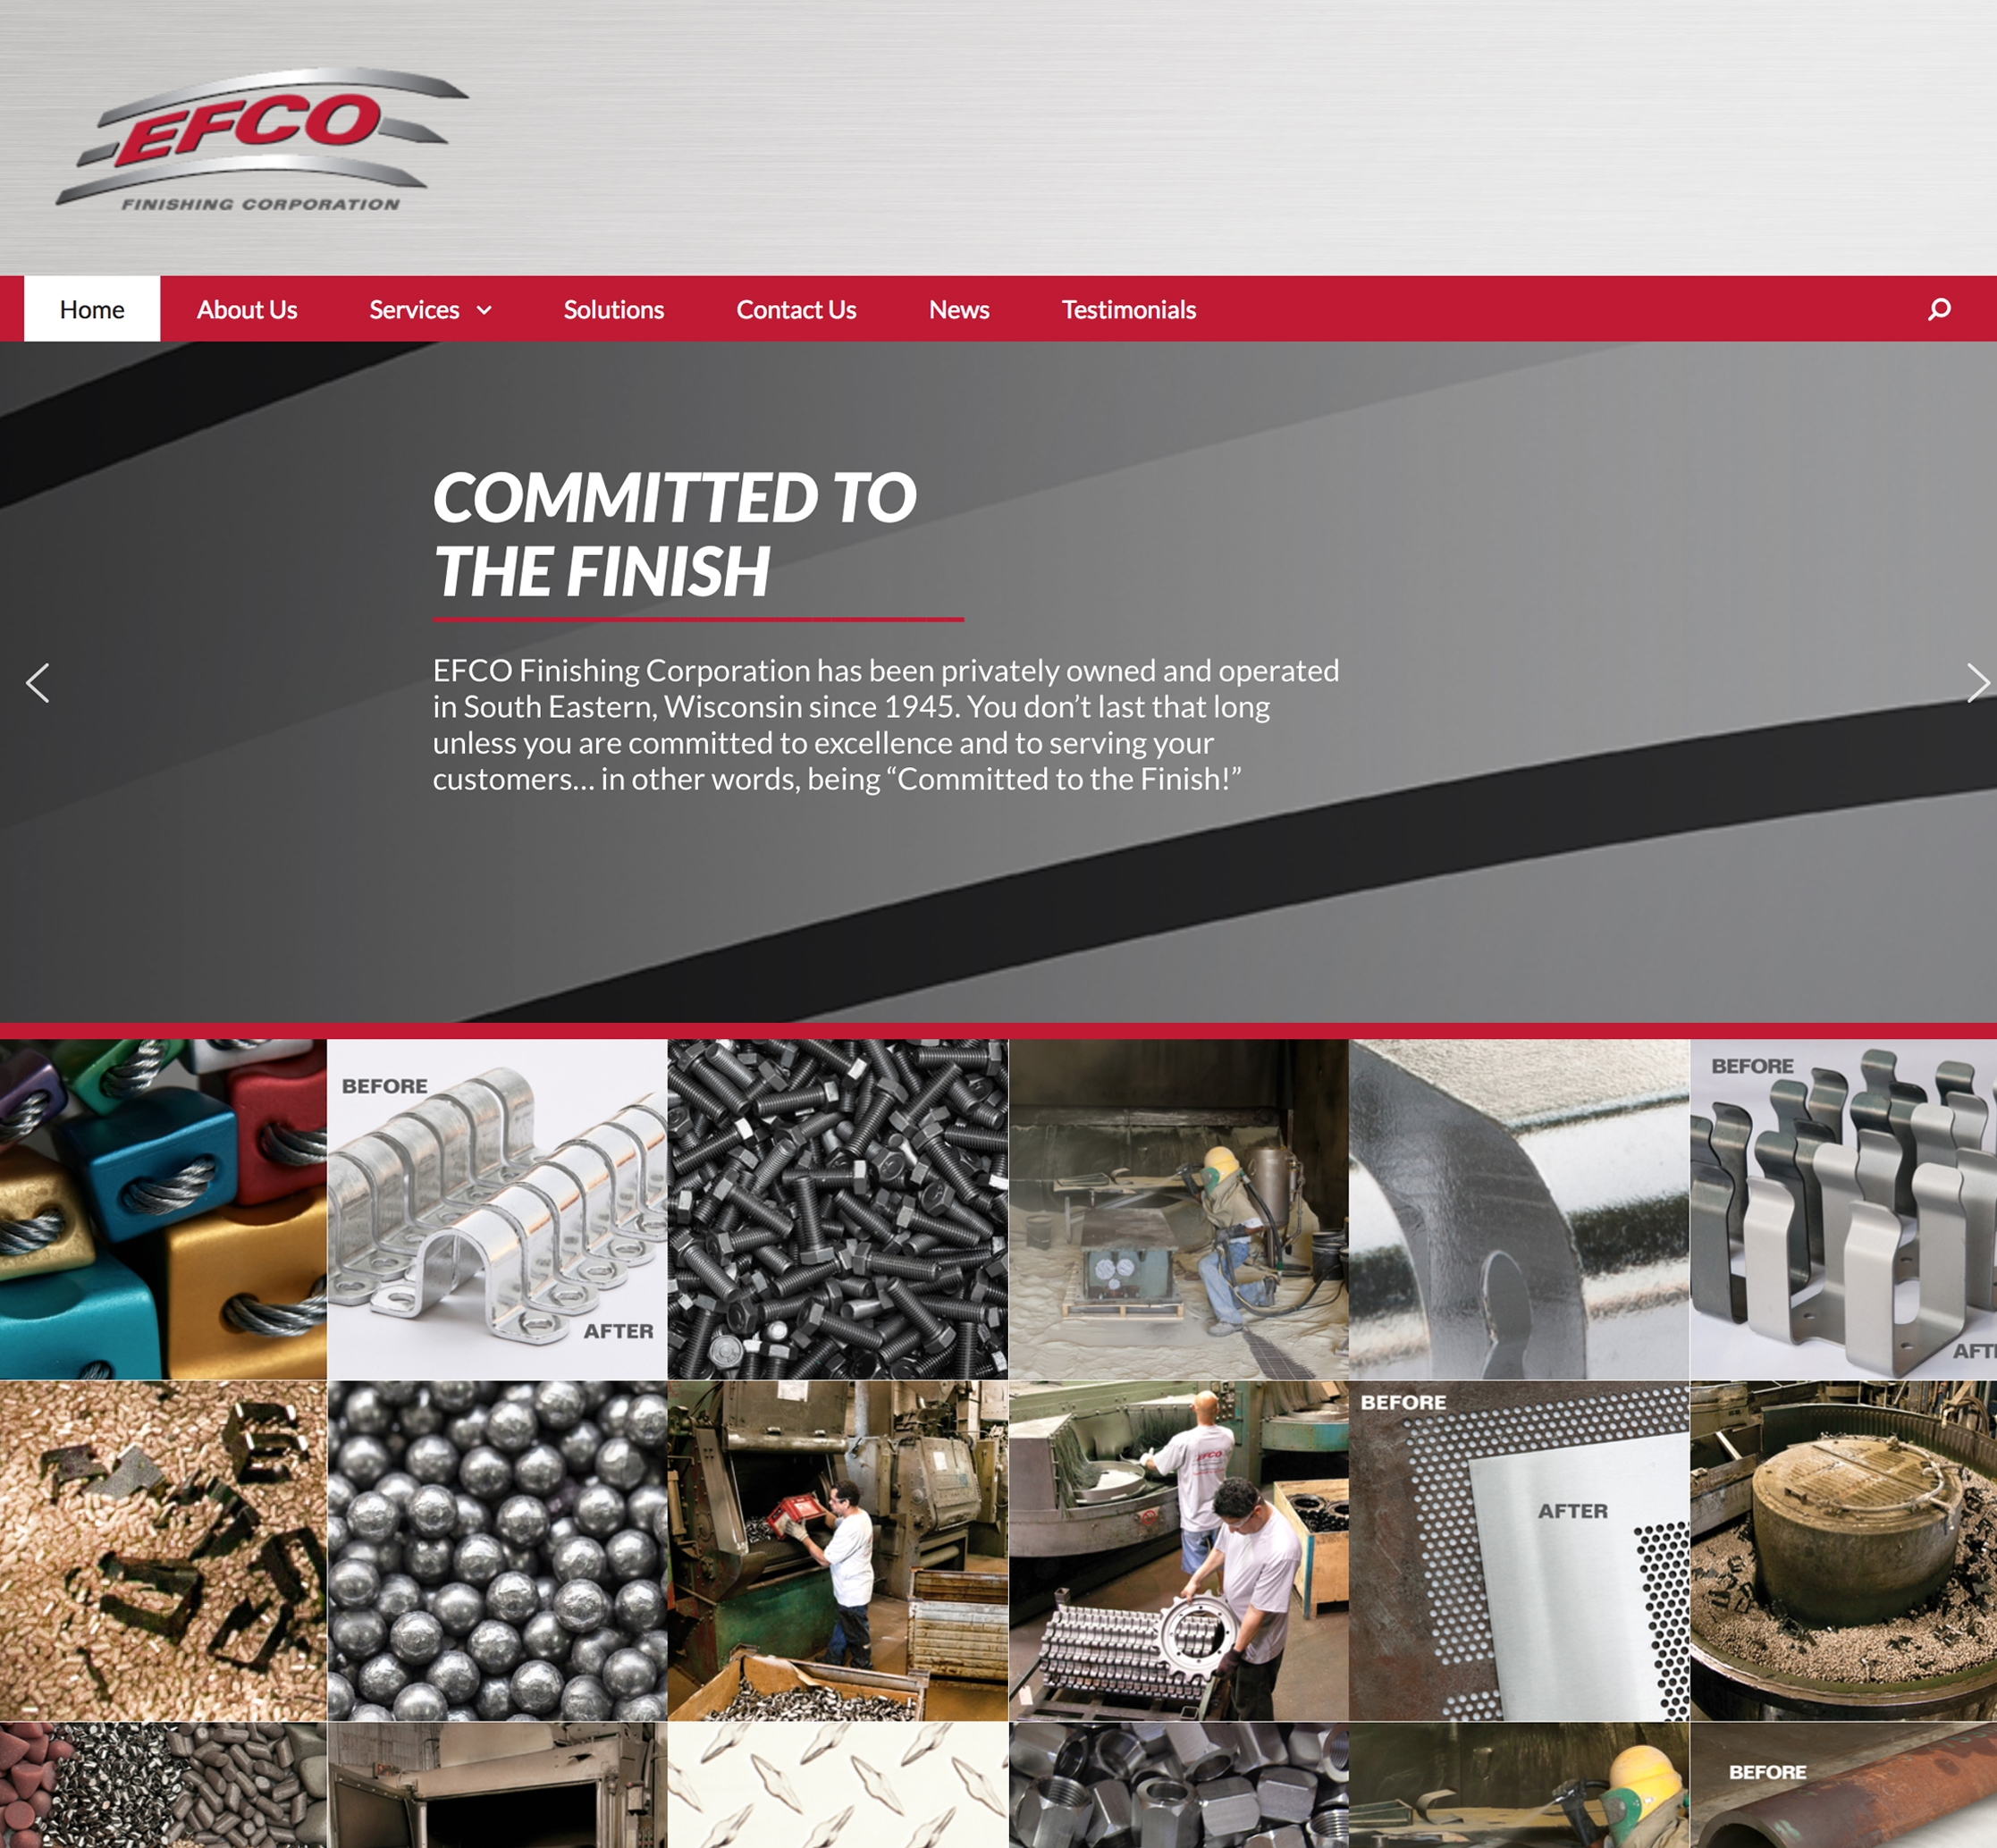 EFCO Finishing Corporation